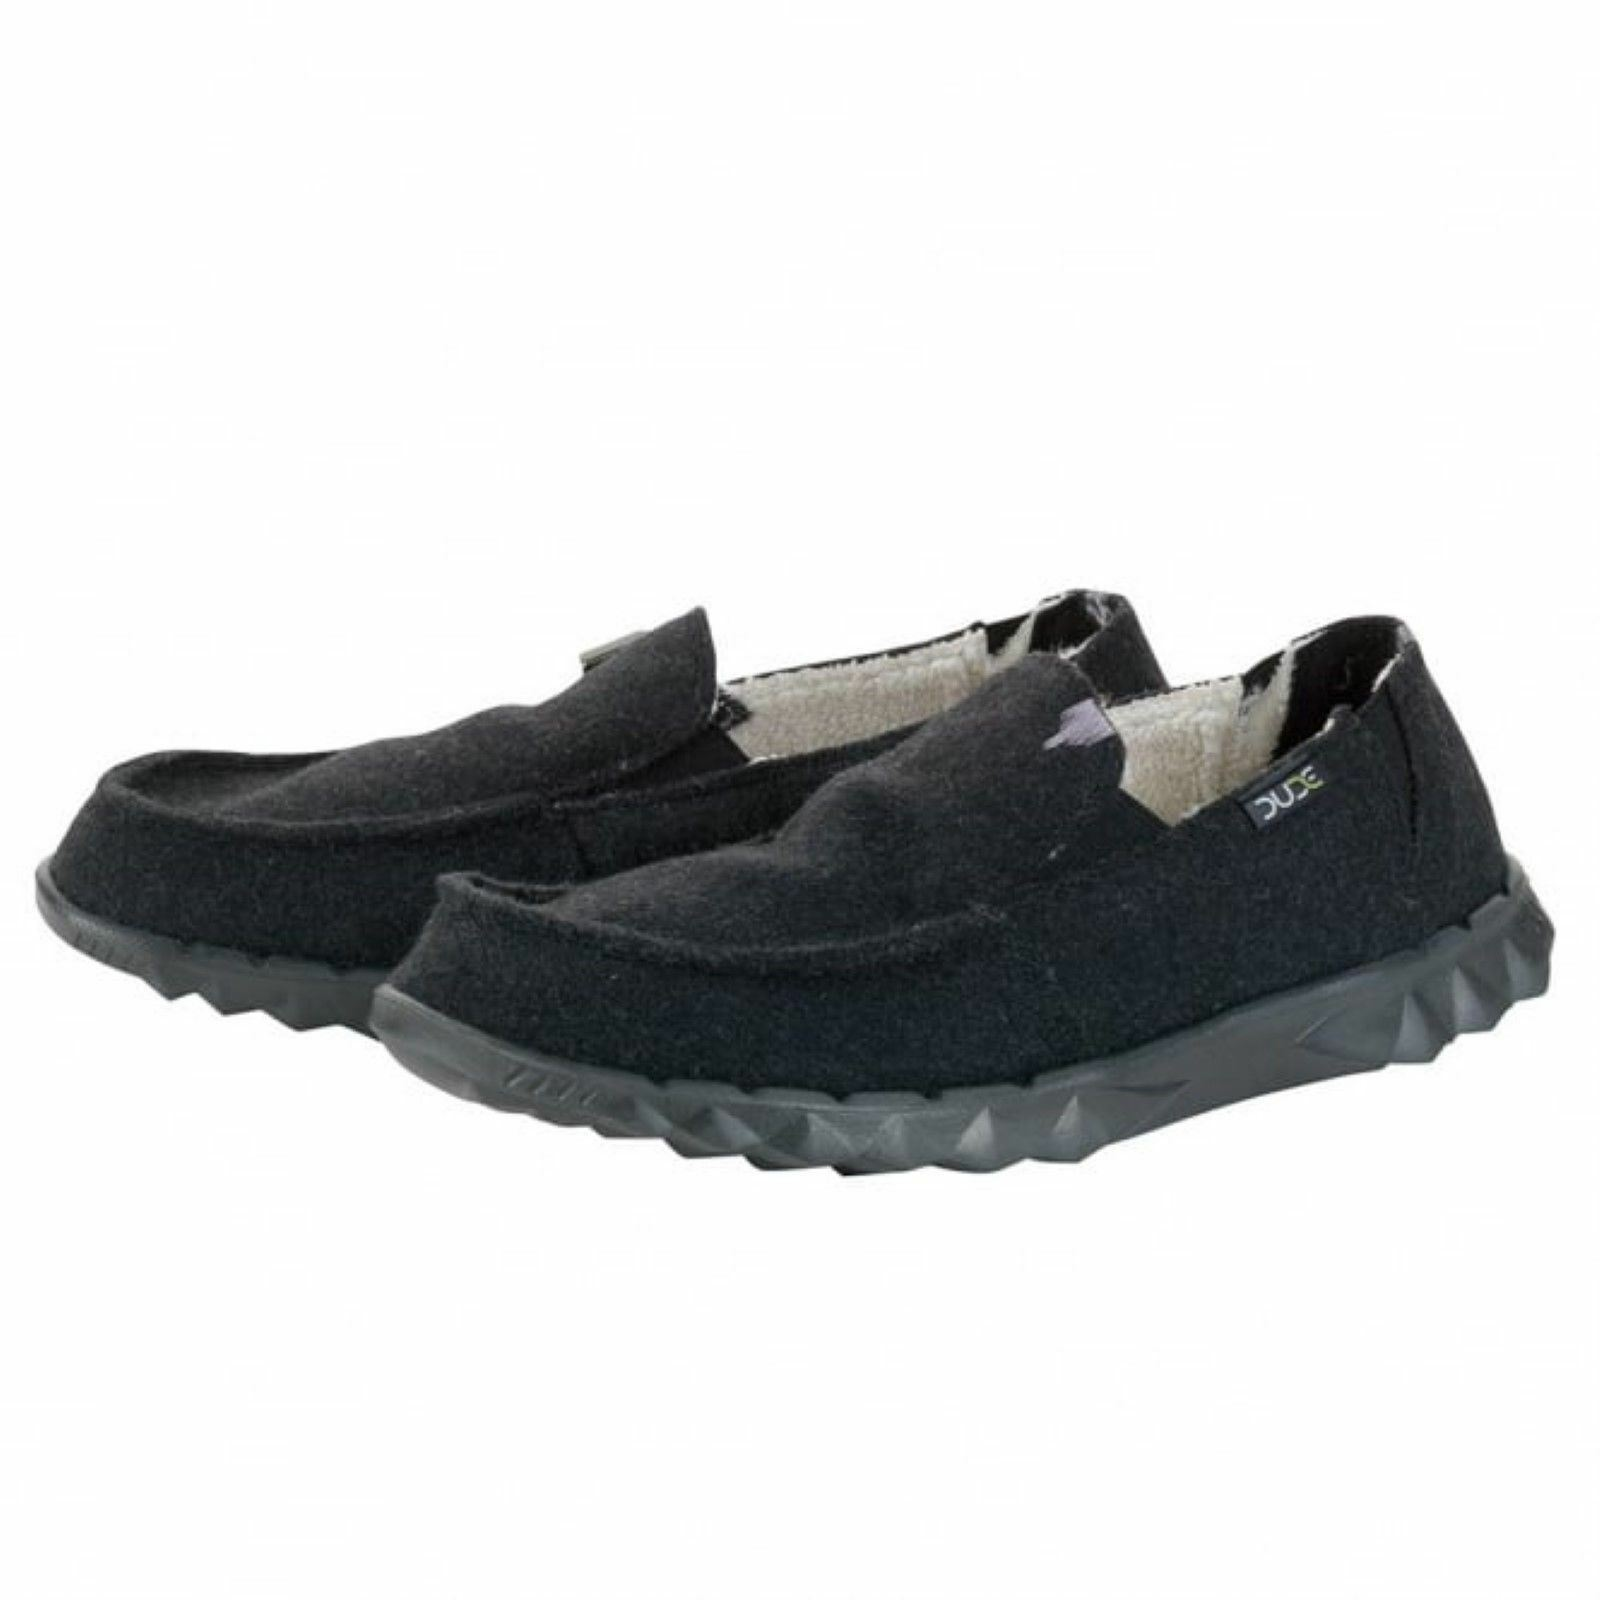 Hey Dude Farty Slip On Hombre Zapatos Farty Dude Chalet Negro Felt  Leather Insole 71a447